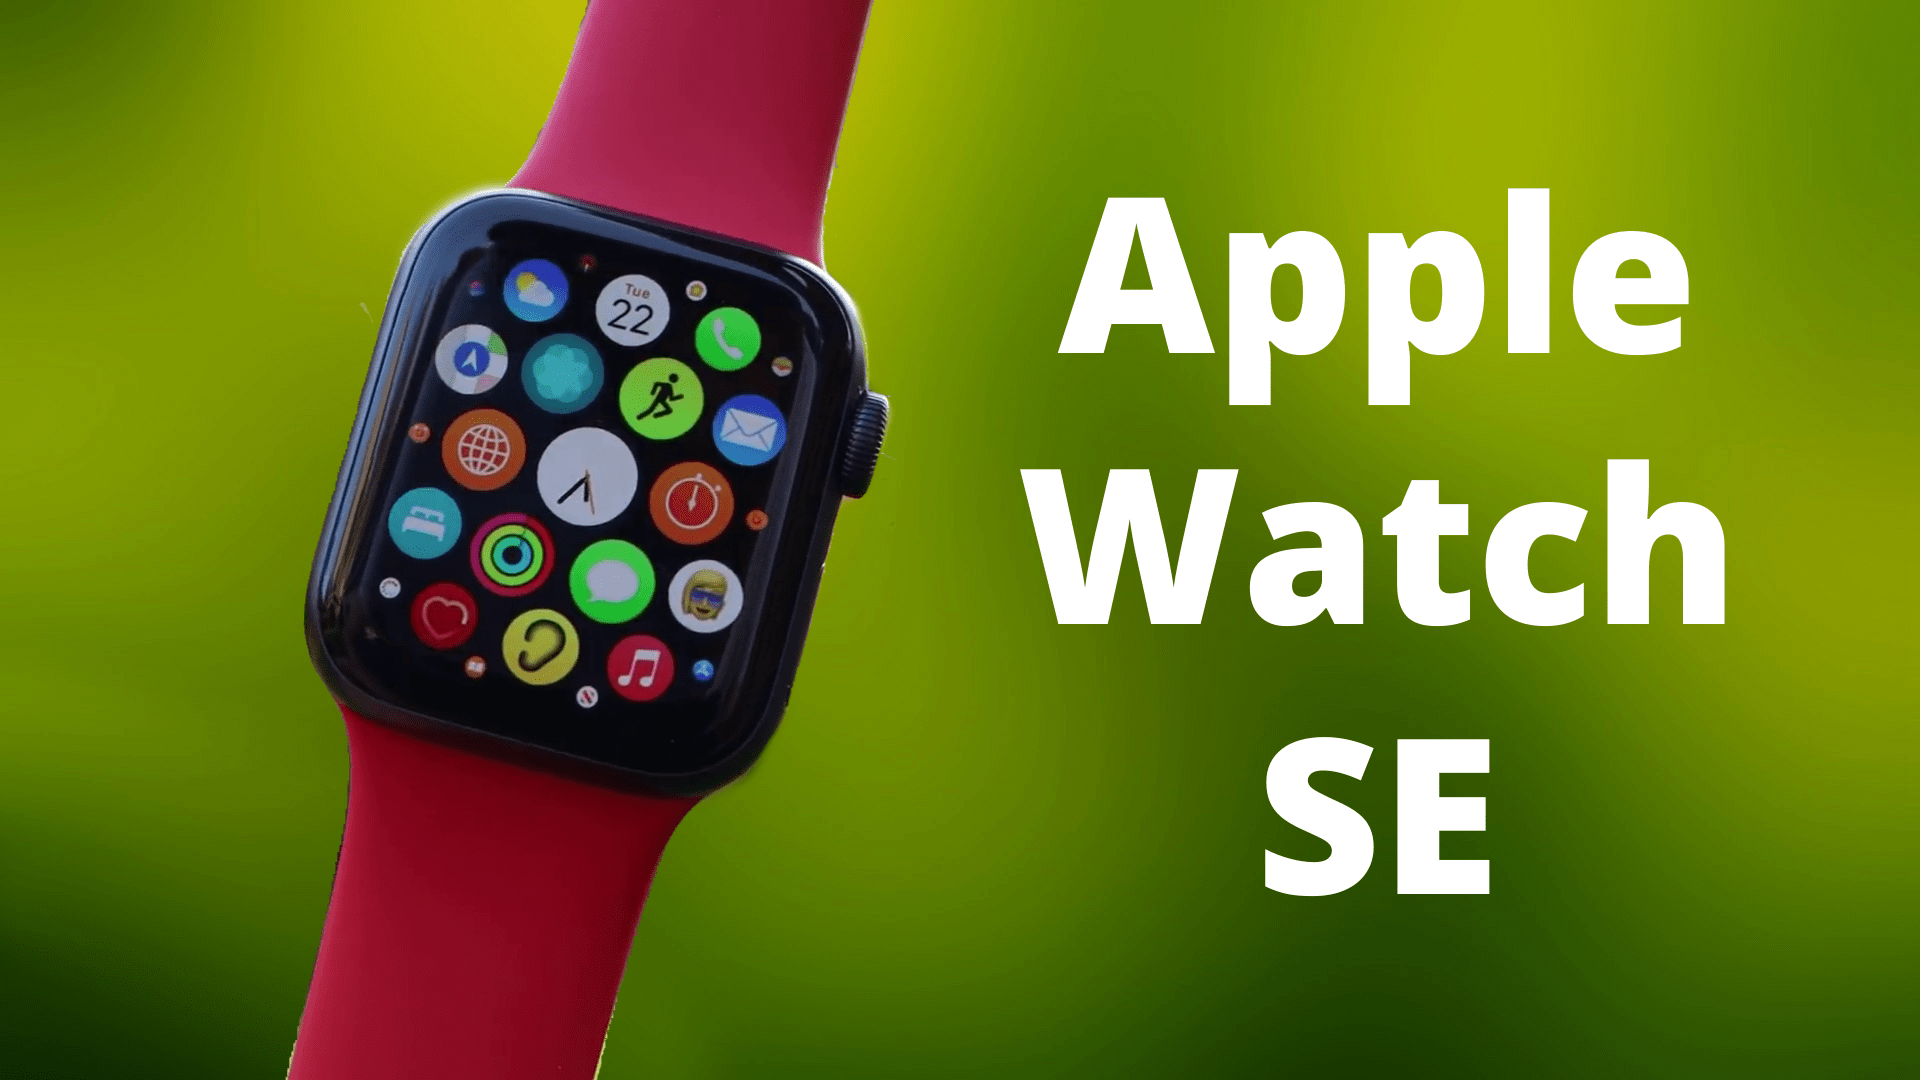 Apple Watch SE Review Pros & Cons